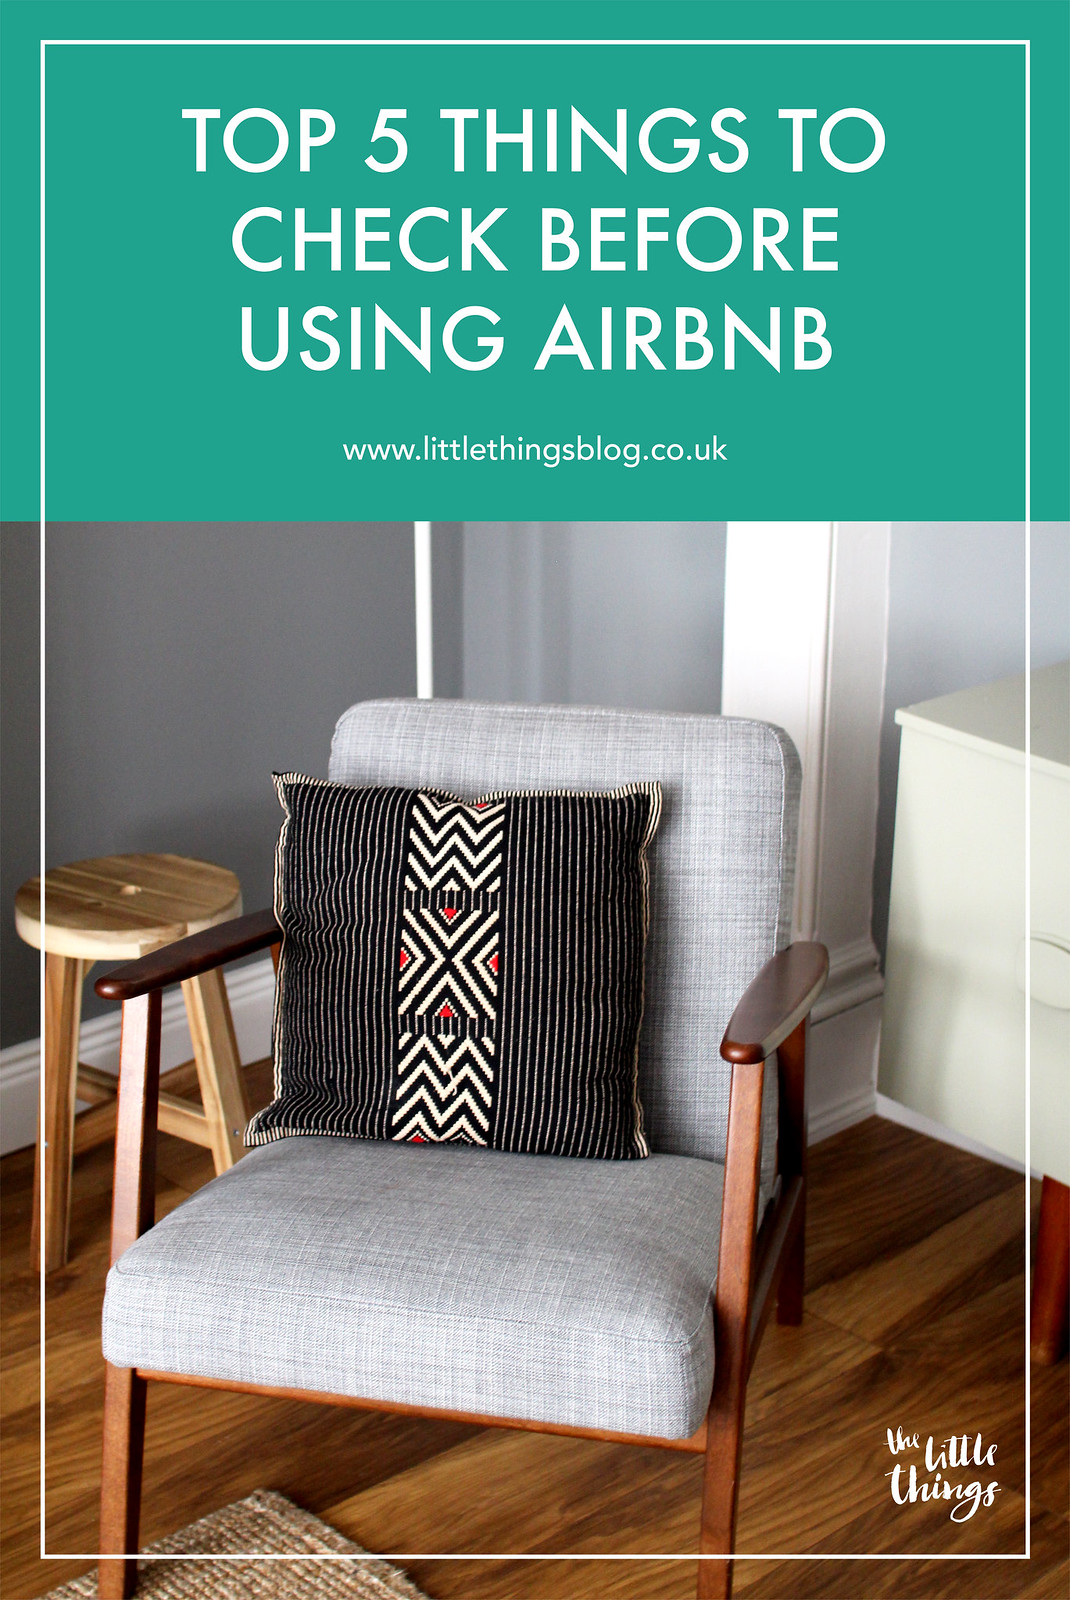 Top 5 things to check before using Airbnb